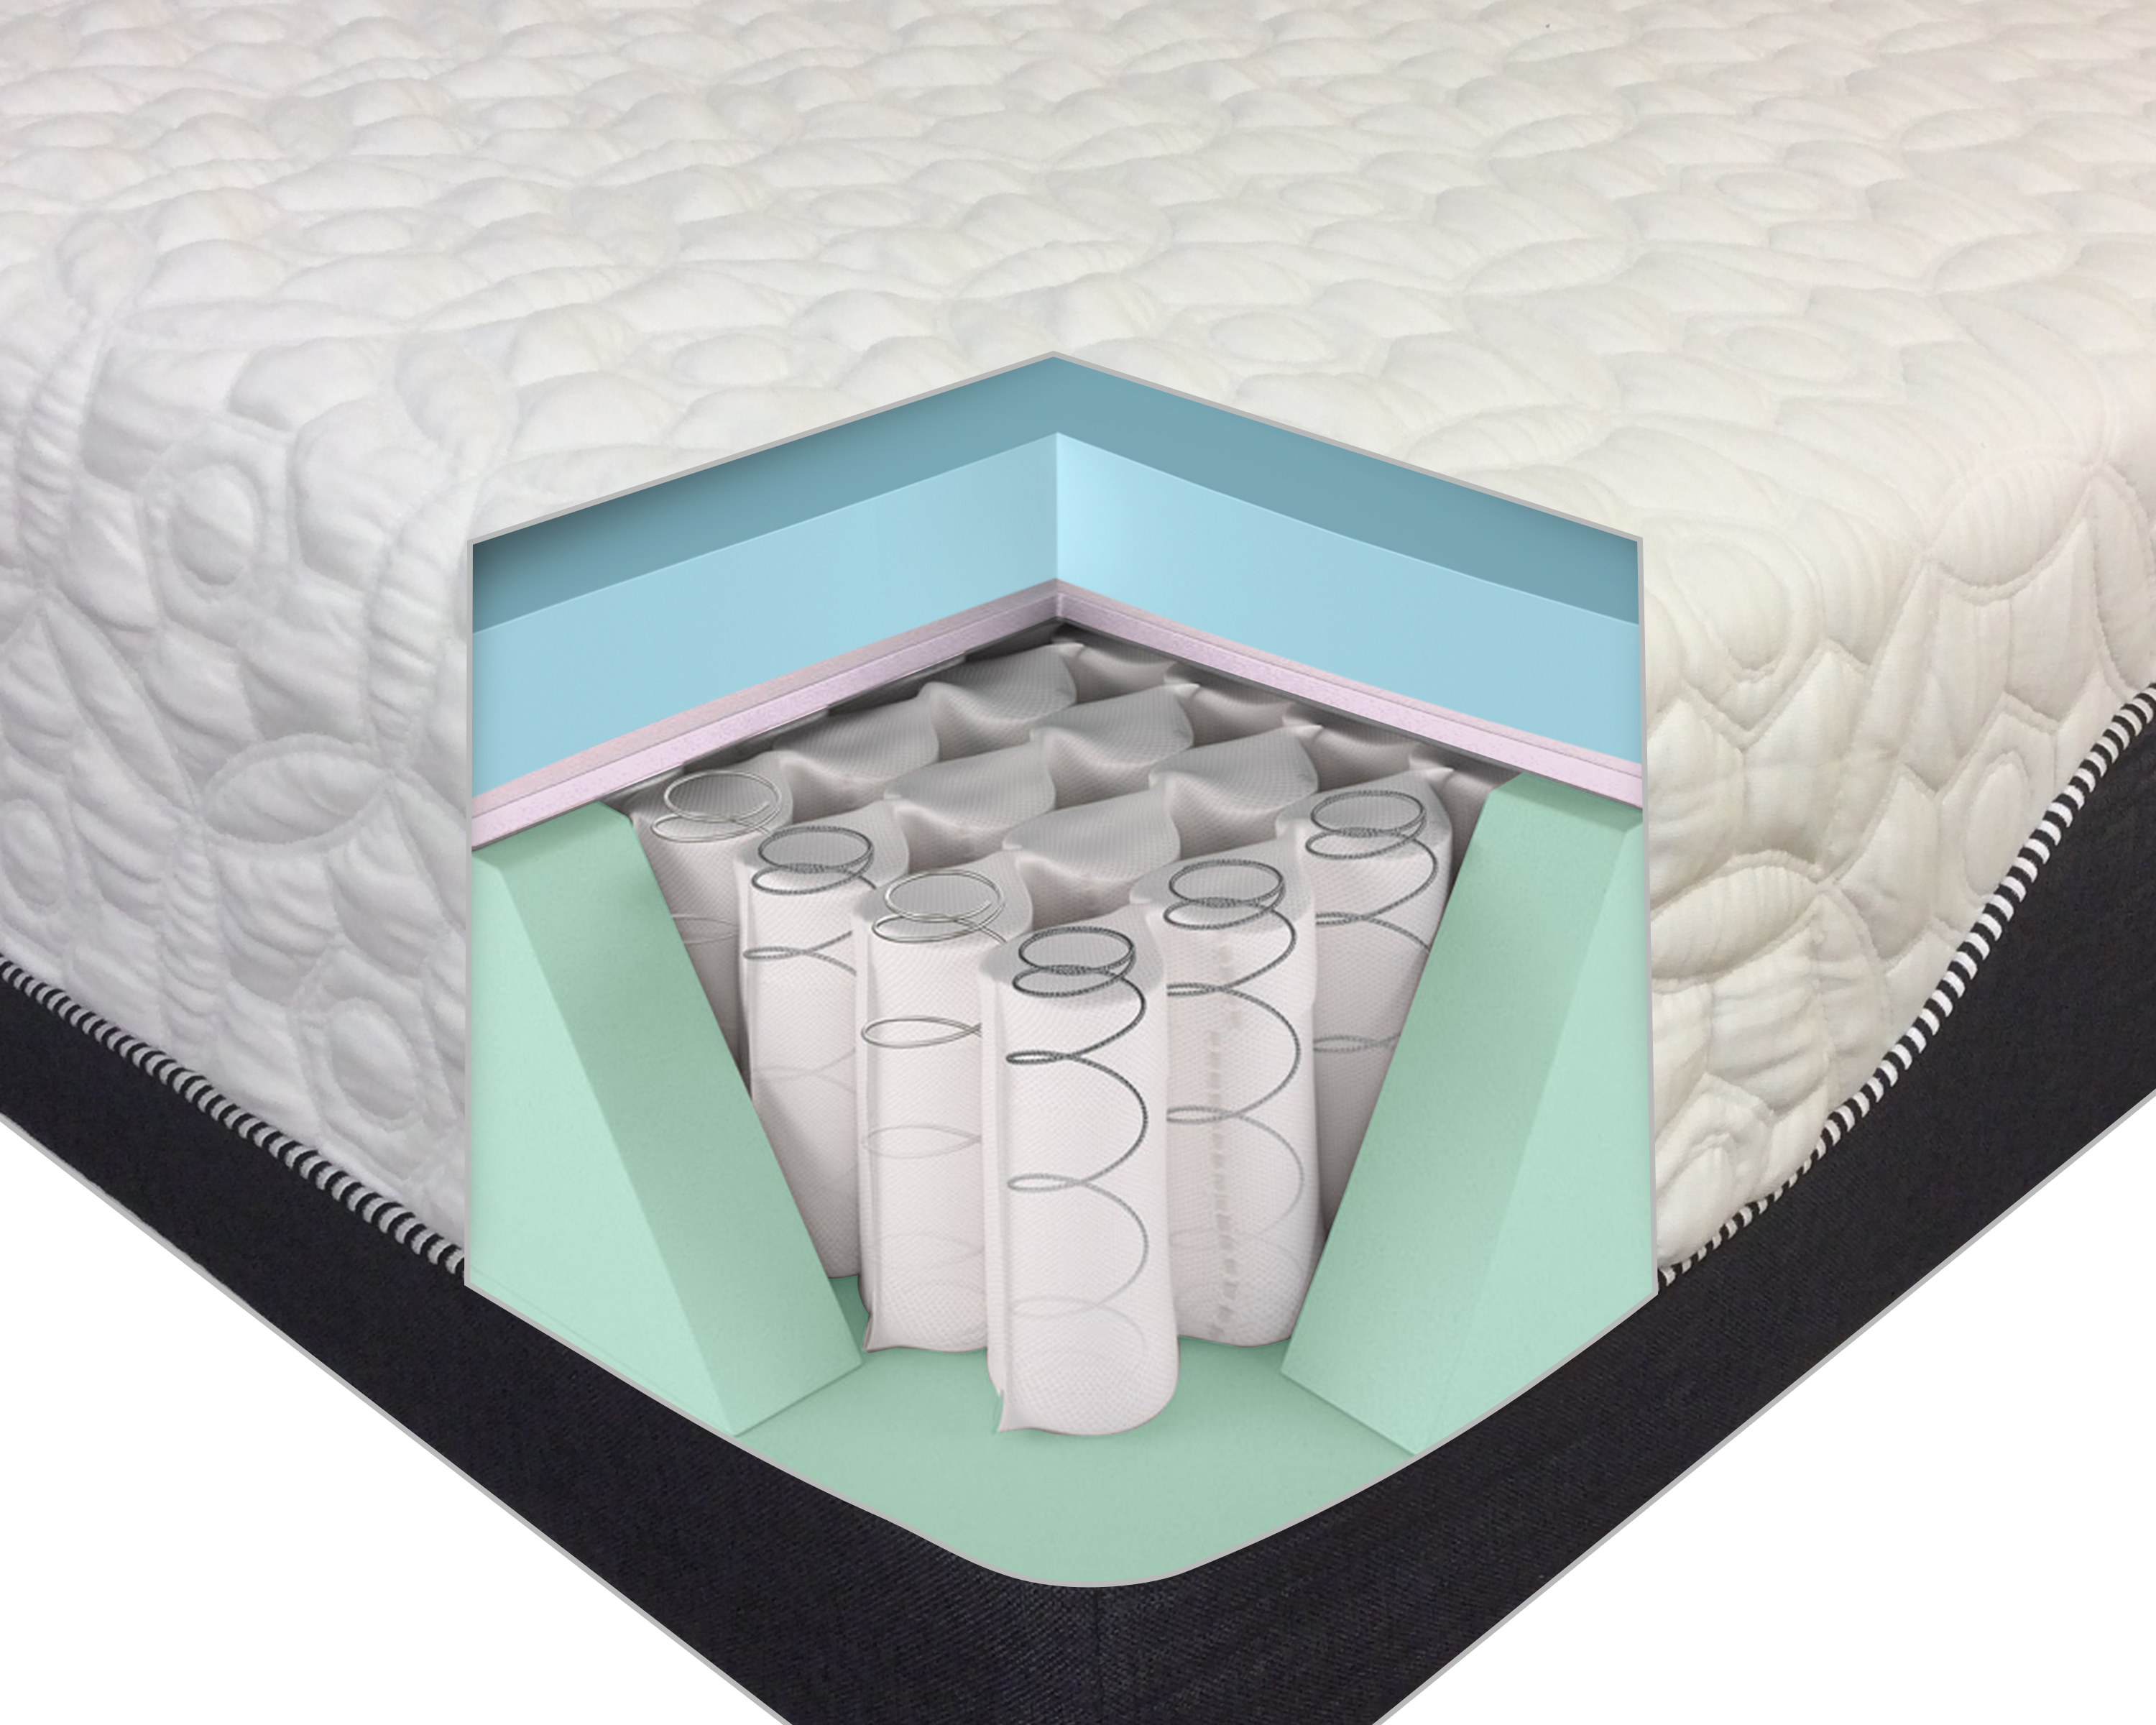 12 Inch Pocketed Coil Hybrid Mattress With Cool Gel Memory